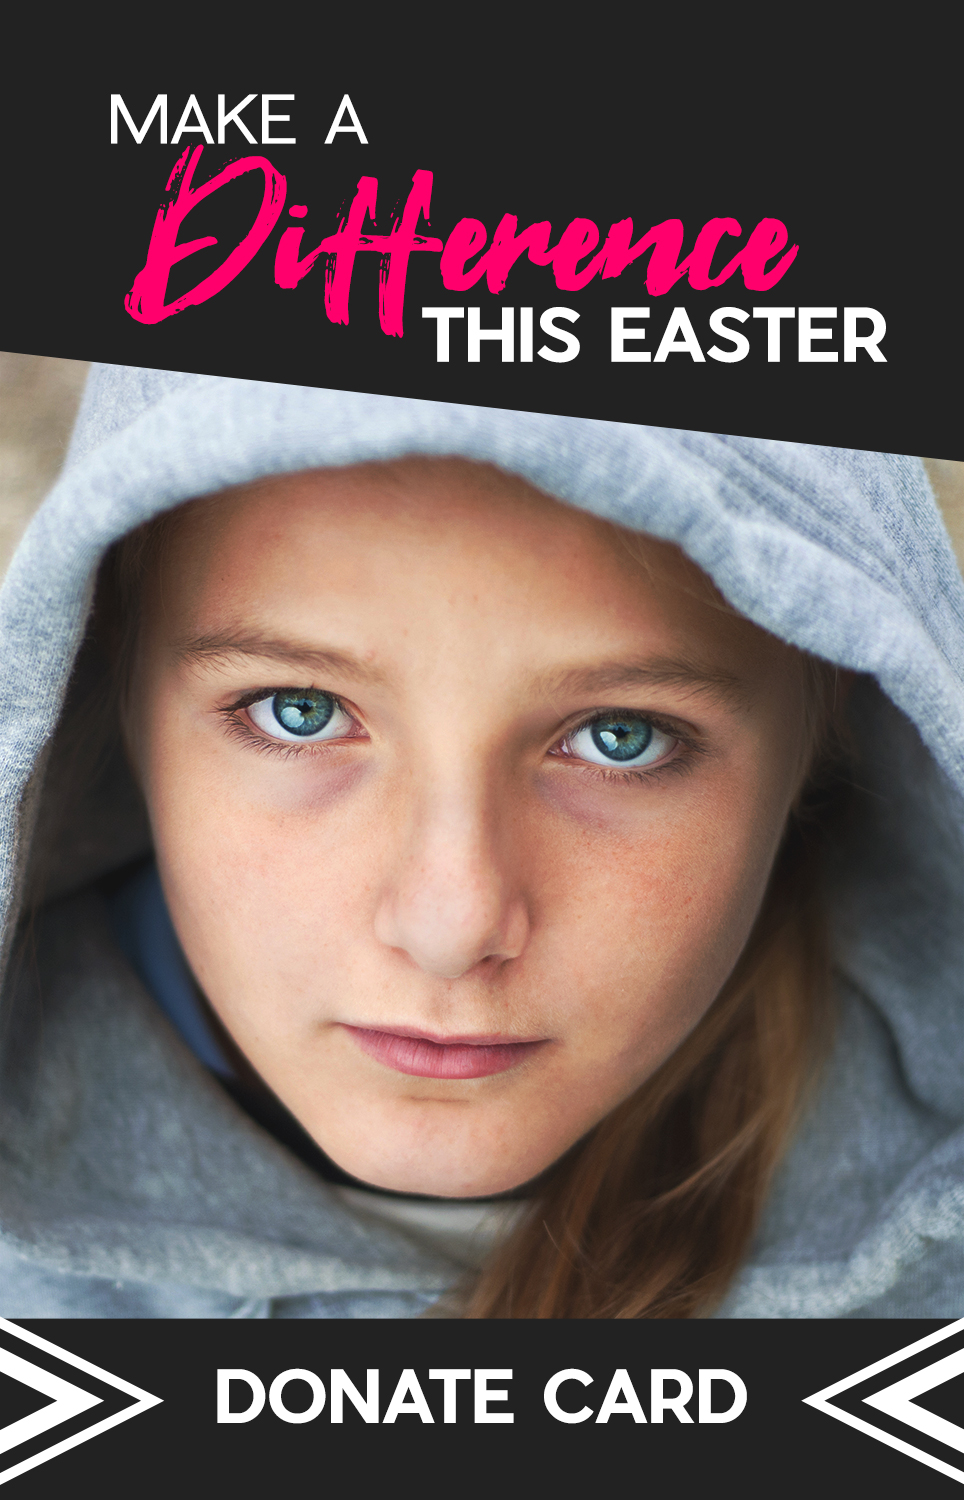 Make a Difference this Easter Donate Card